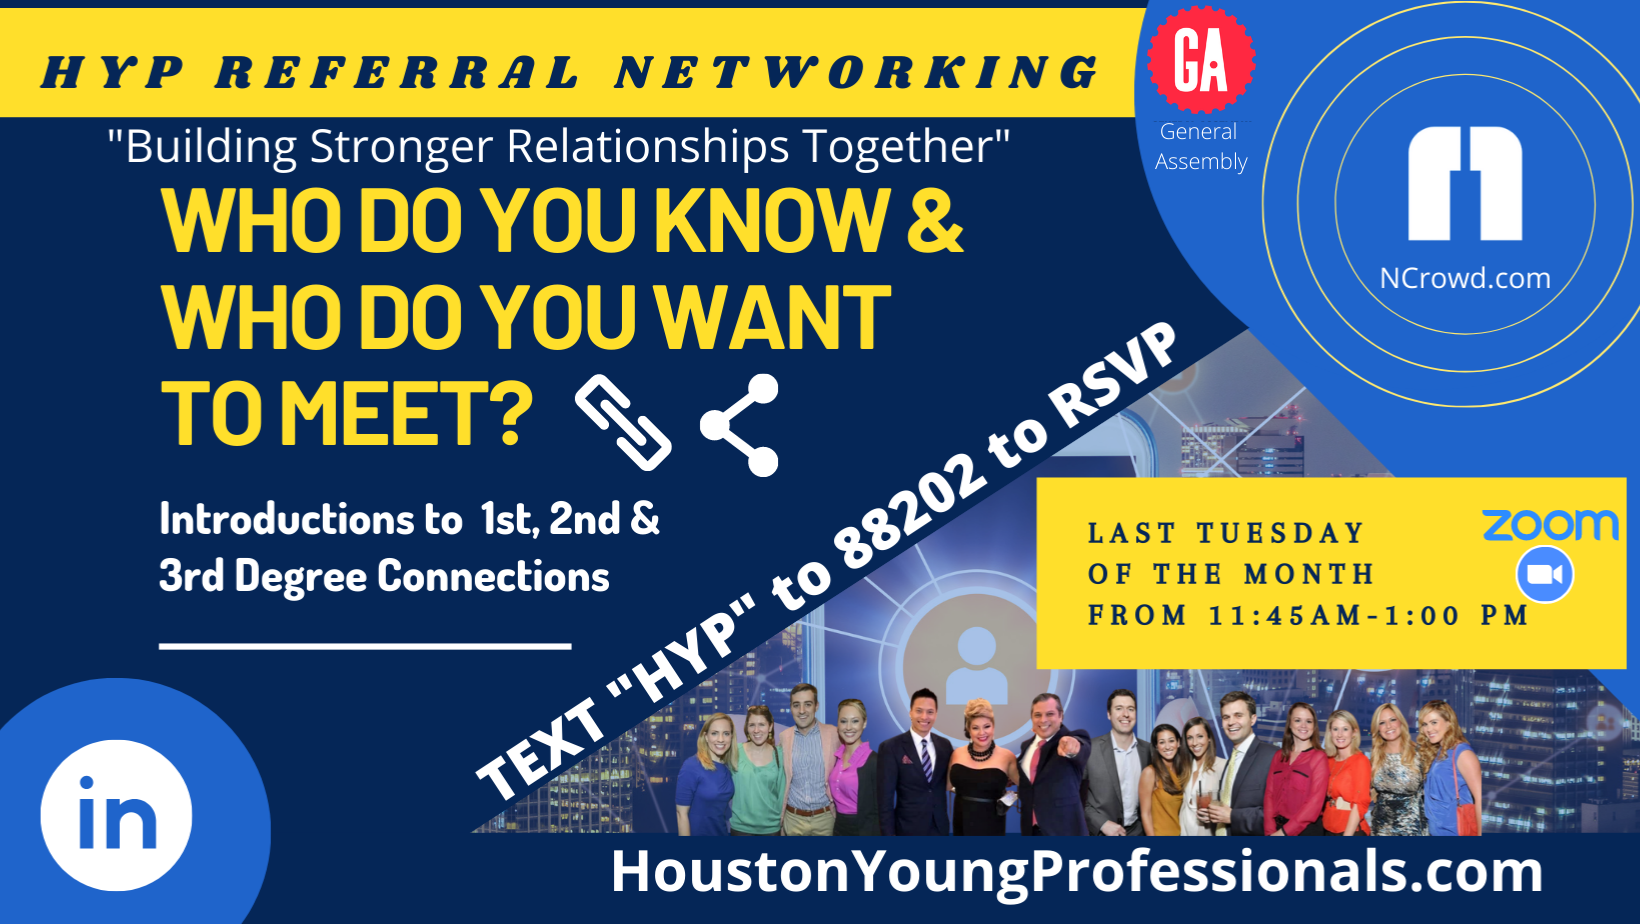 HYP Referral Networking: Building Stronger Relationships Together